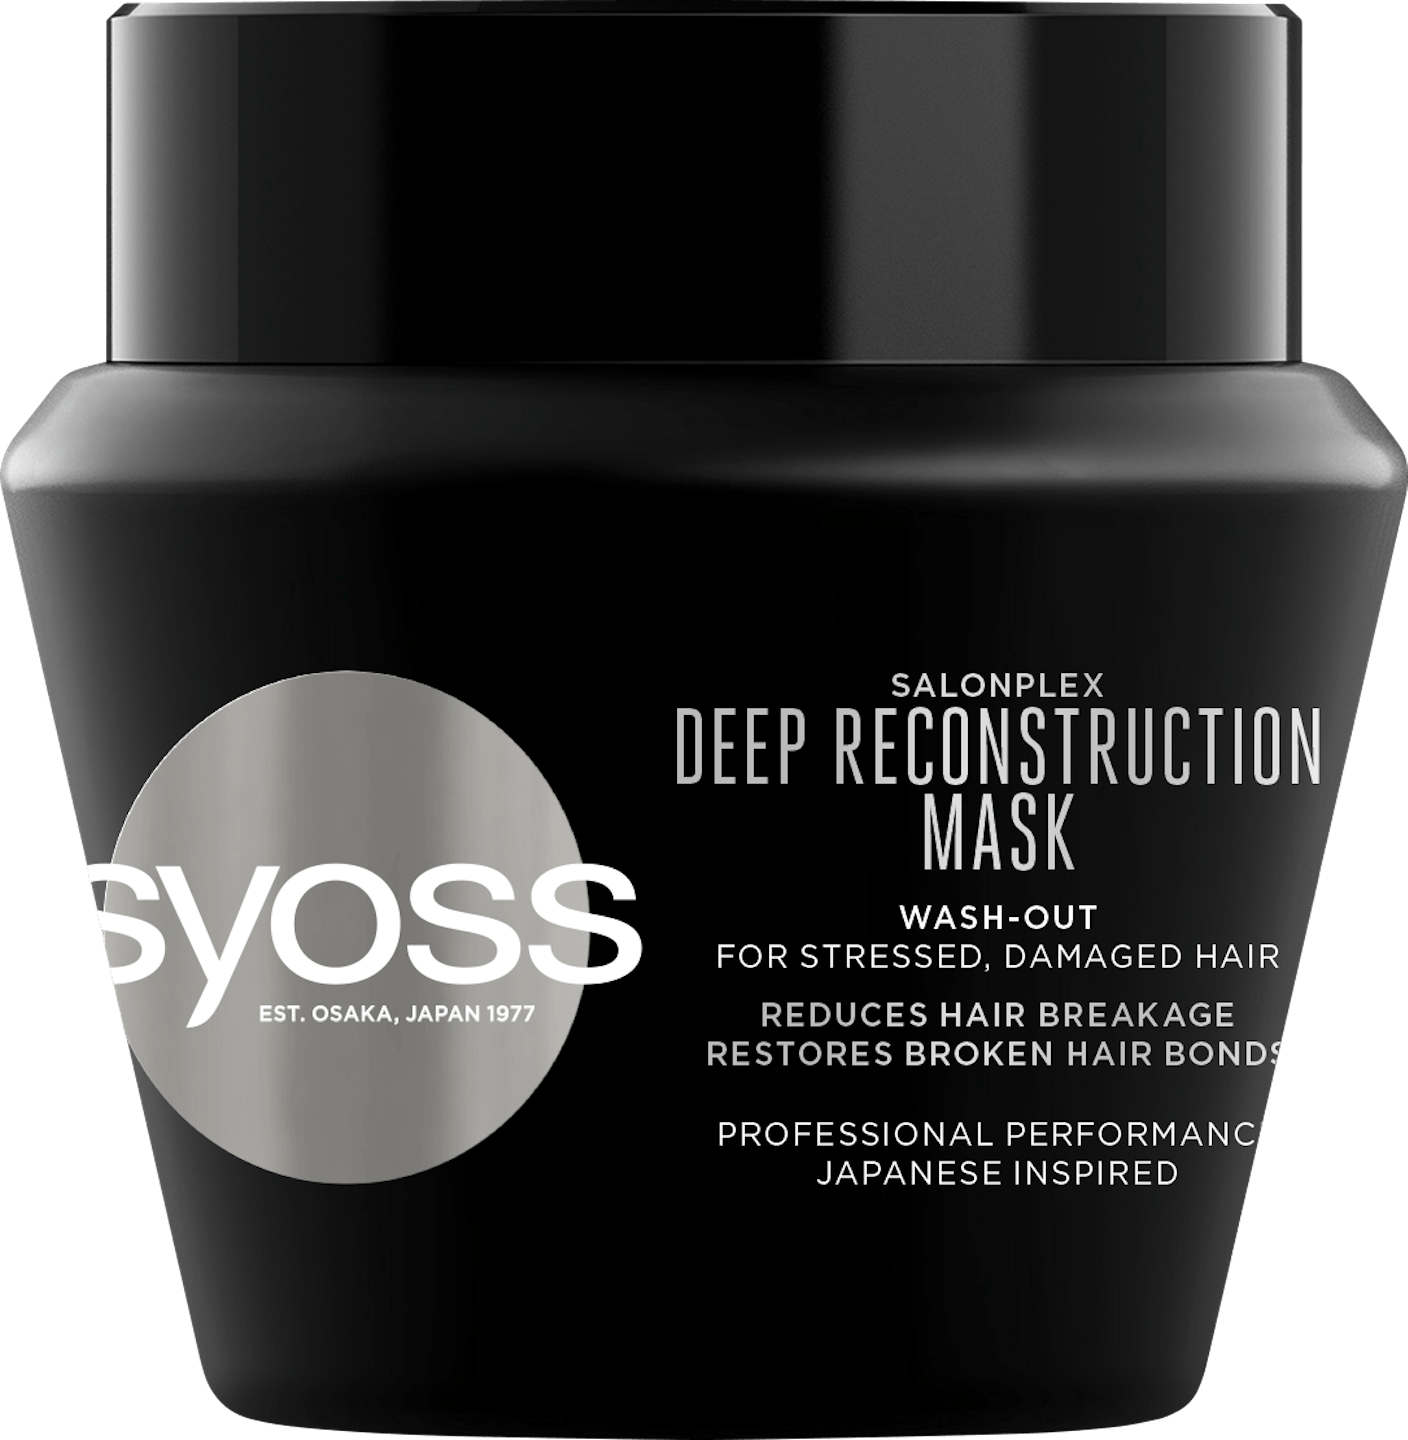 Syoss Salonplex Deep Reconstruction Mask pack shot